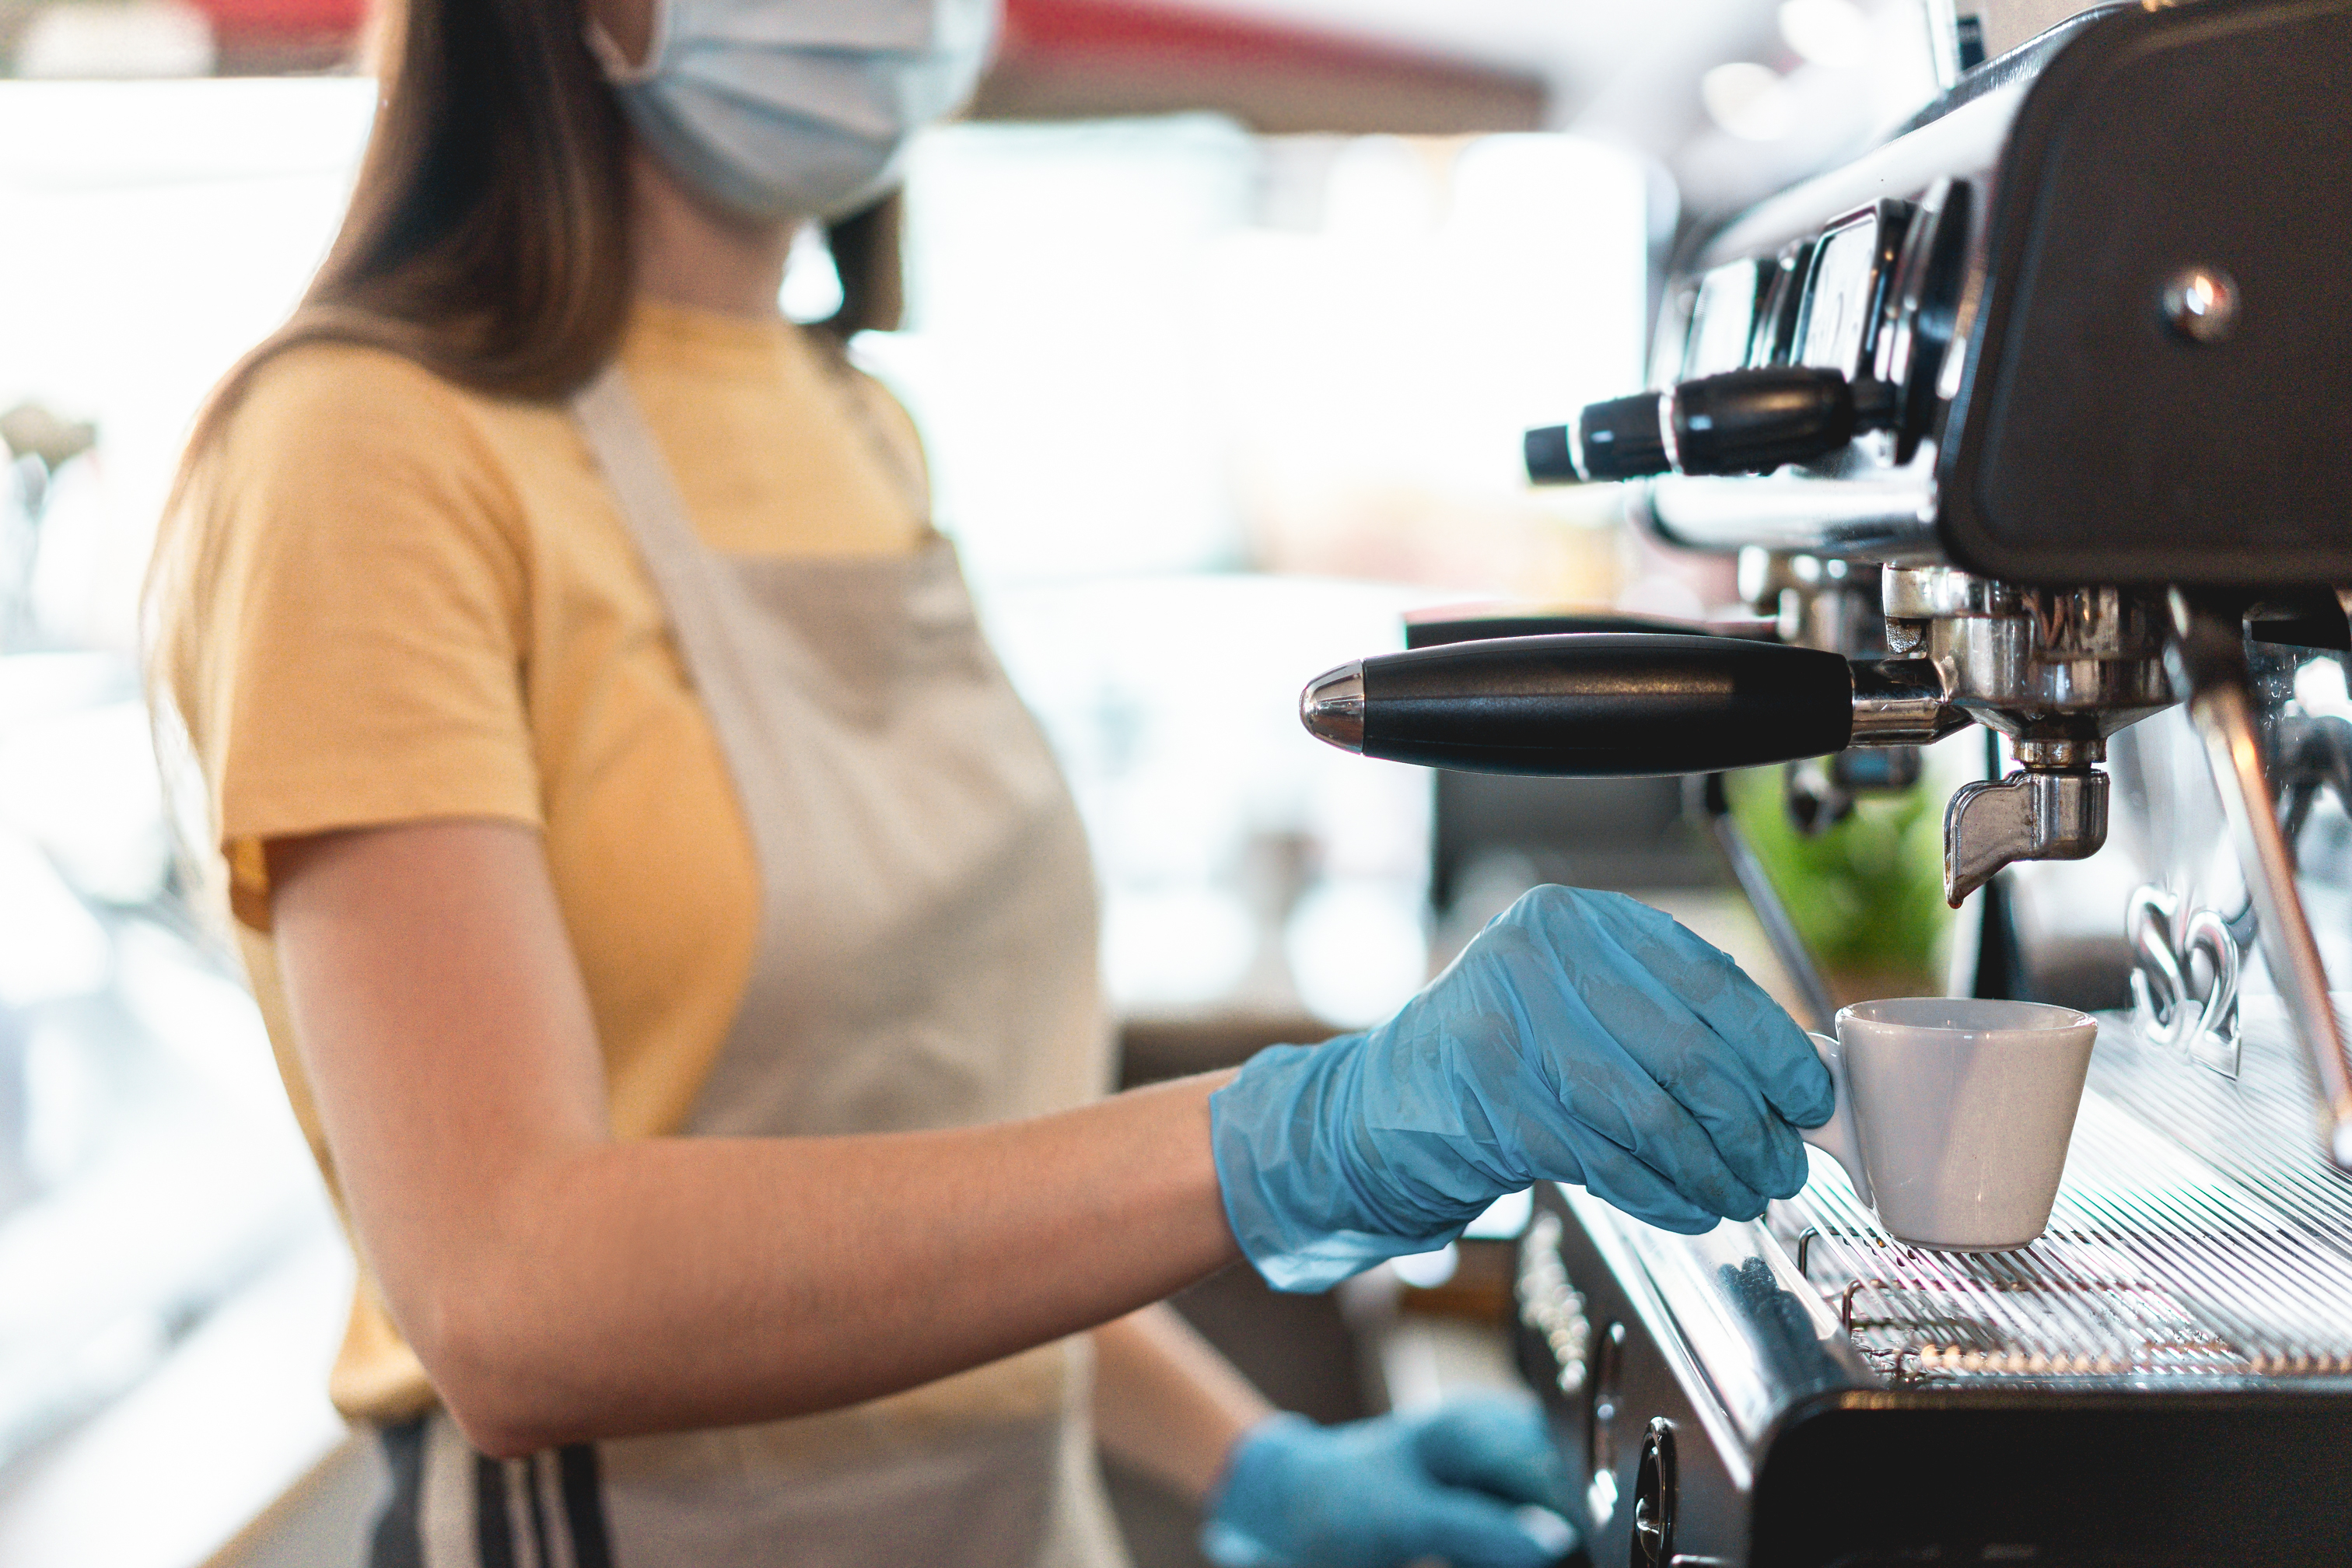 Young female working inside bar restaurant while making coffee wearing gloves and face mask for coronavirus spread prevention - Protective measures at work during Covid-19 outbreak - Focus on hand